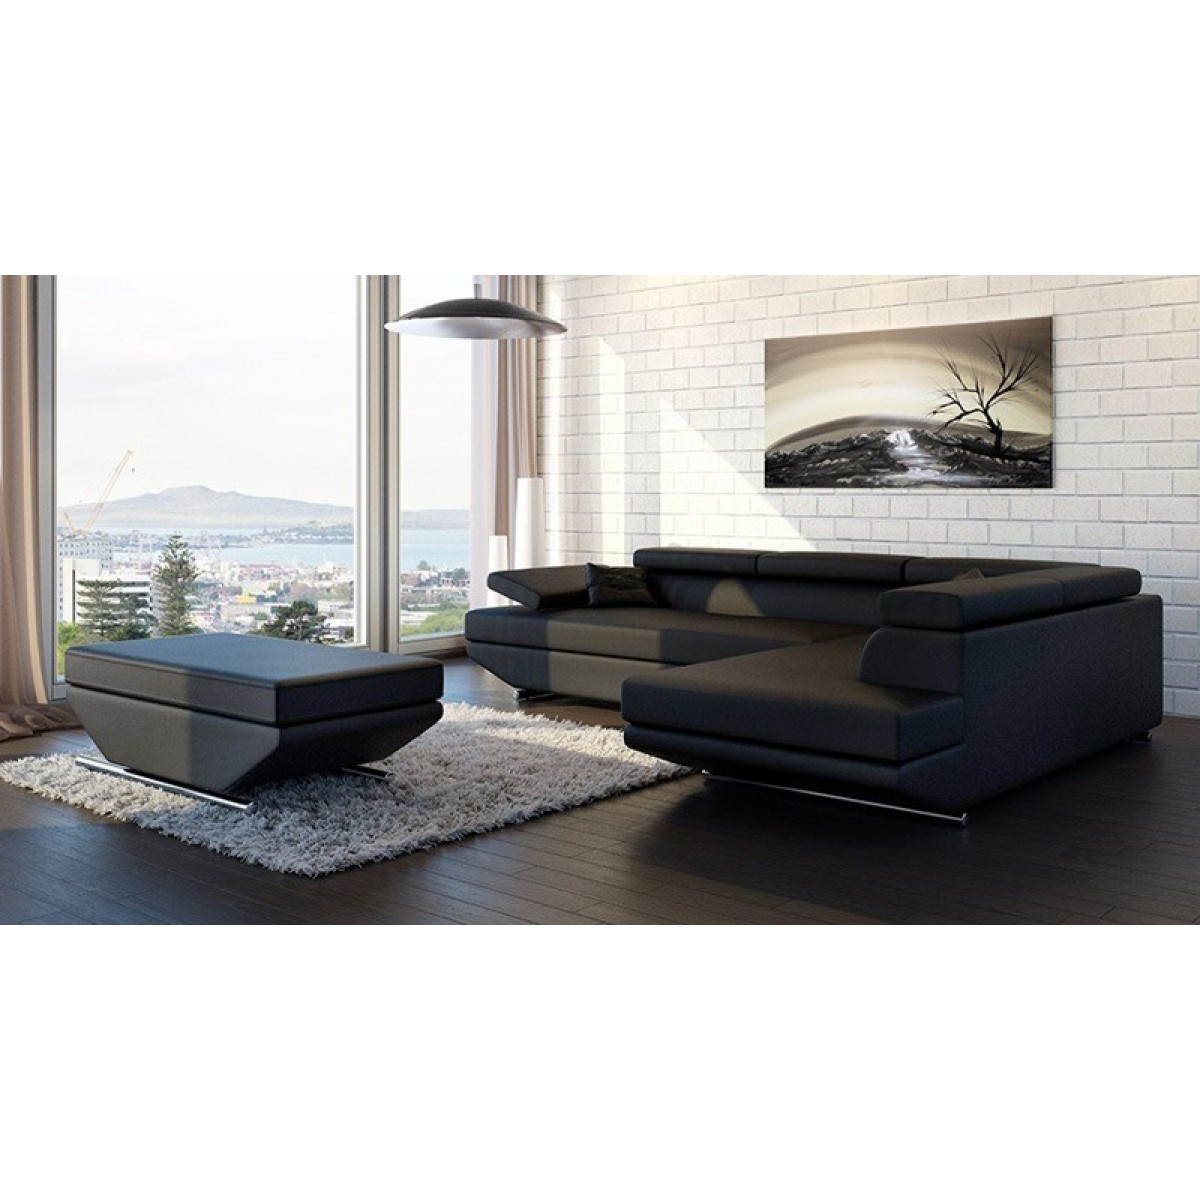 canap d 39 angle en cuir annecy canap s d 39 angle en cuir canap s. Black Bedroom Furniture Sets. Home Design Ideas